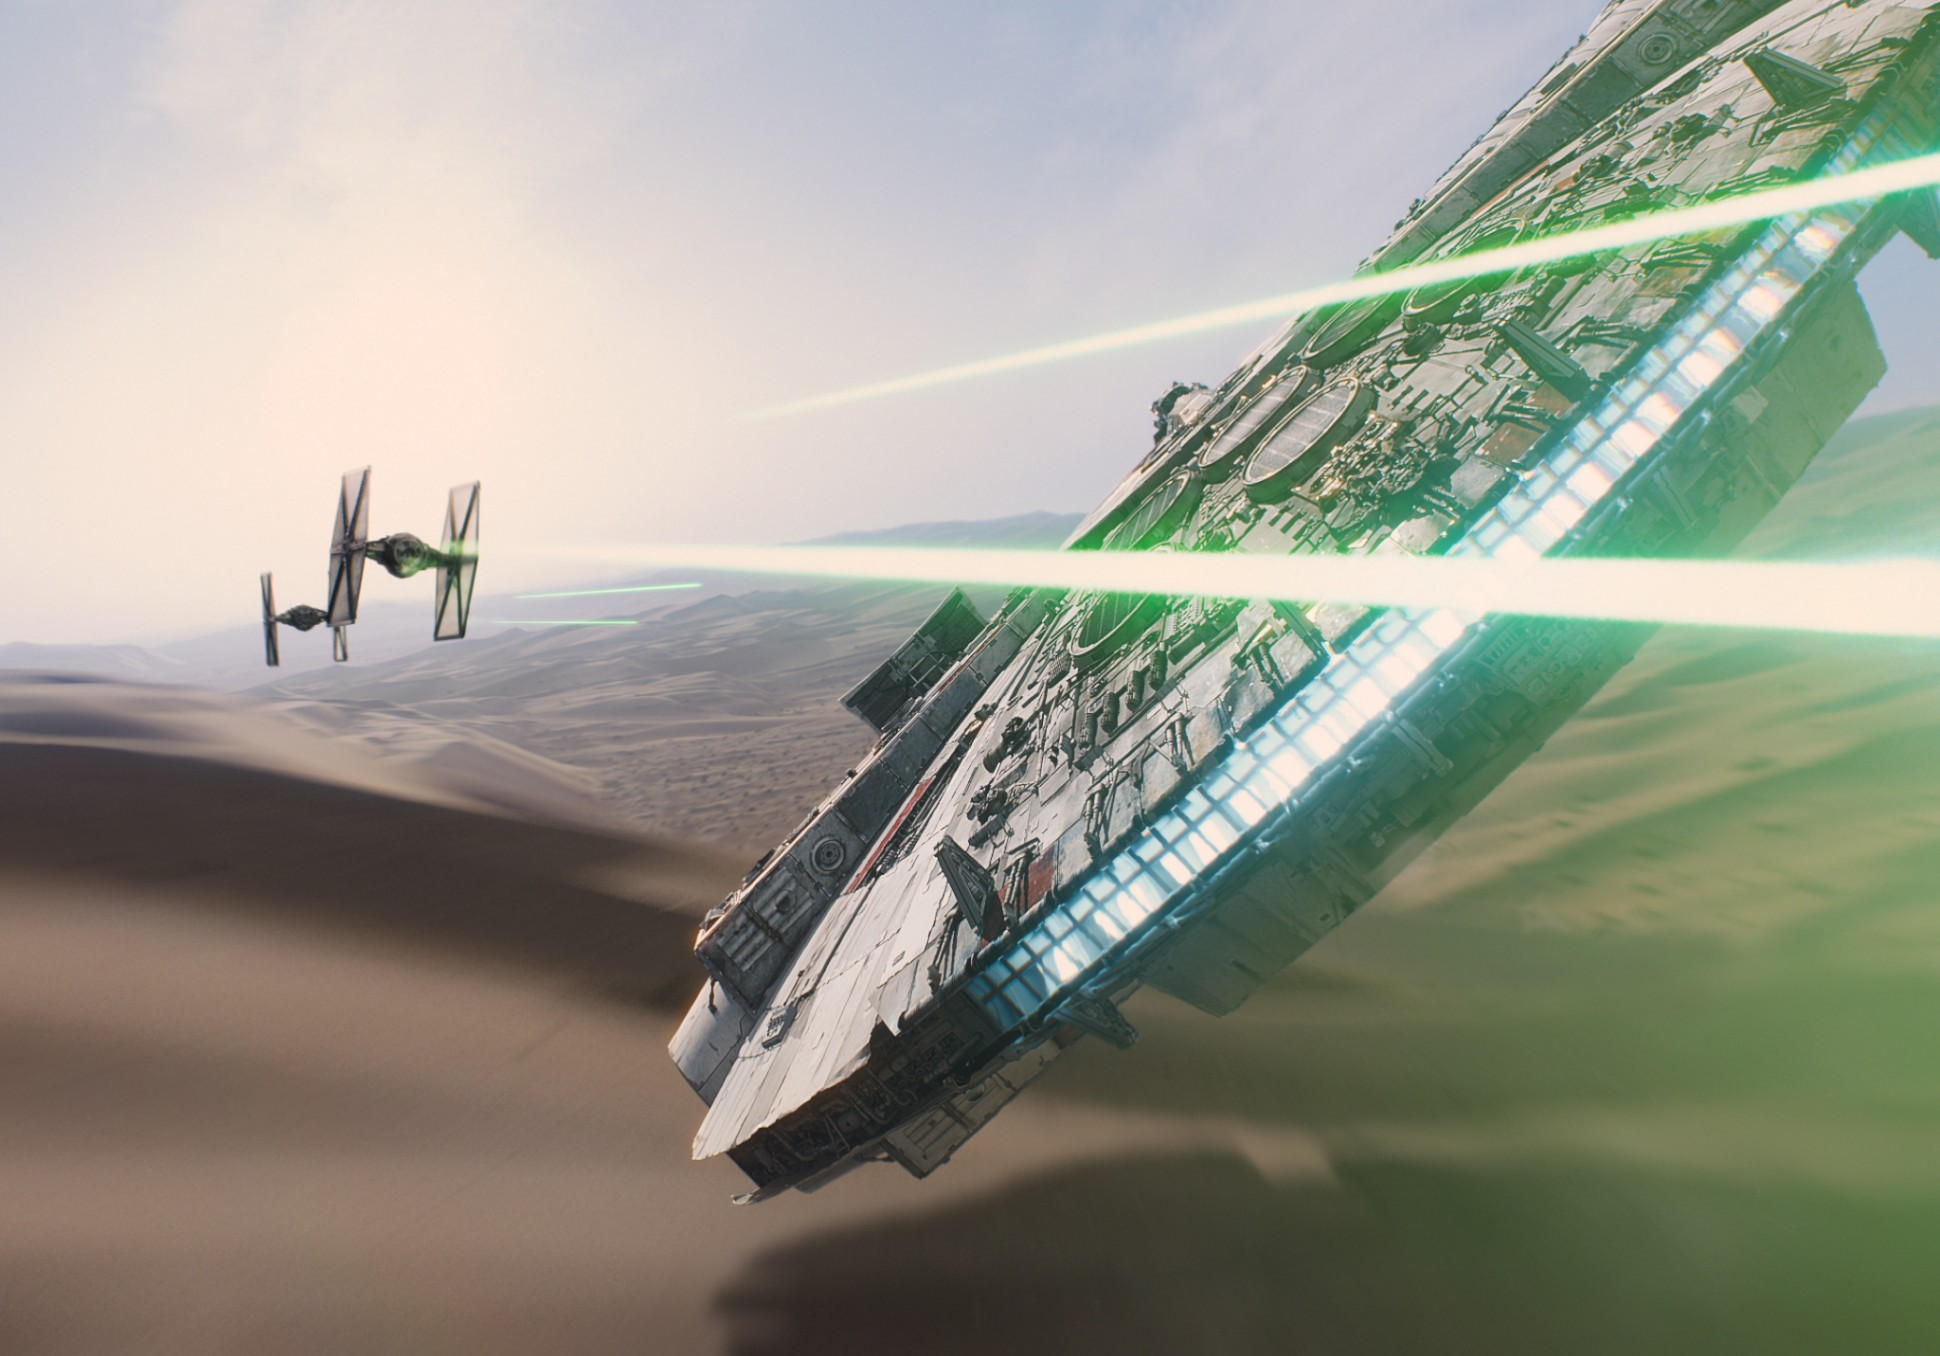 If moviegoers really are feeling the force, then Star Wars could dominate Imax screens even beyond that.